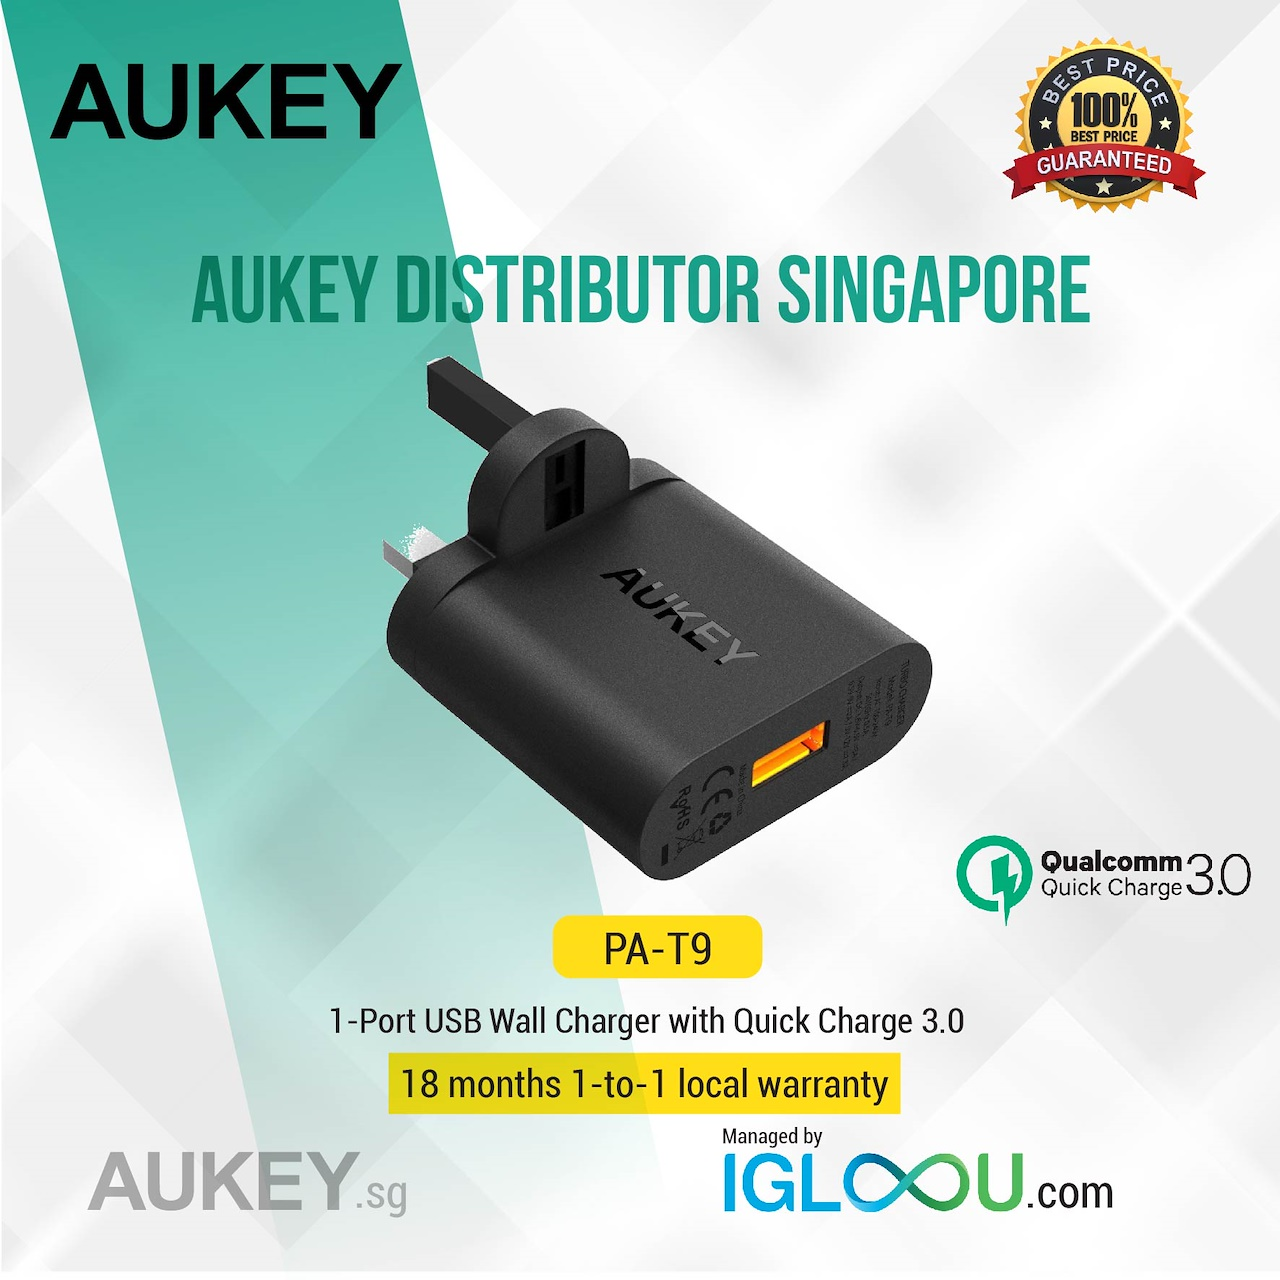 Buy Sg Best Selleraukey Wireless Charger Or Wall Chargers With Travel Home Adaptor Aukey Turbo Charge Pa T9 Quick Qualcomm 30 Original 1 X T15 5 Ports Usb Desktop 26ft Detachable Power Adapter User Manual